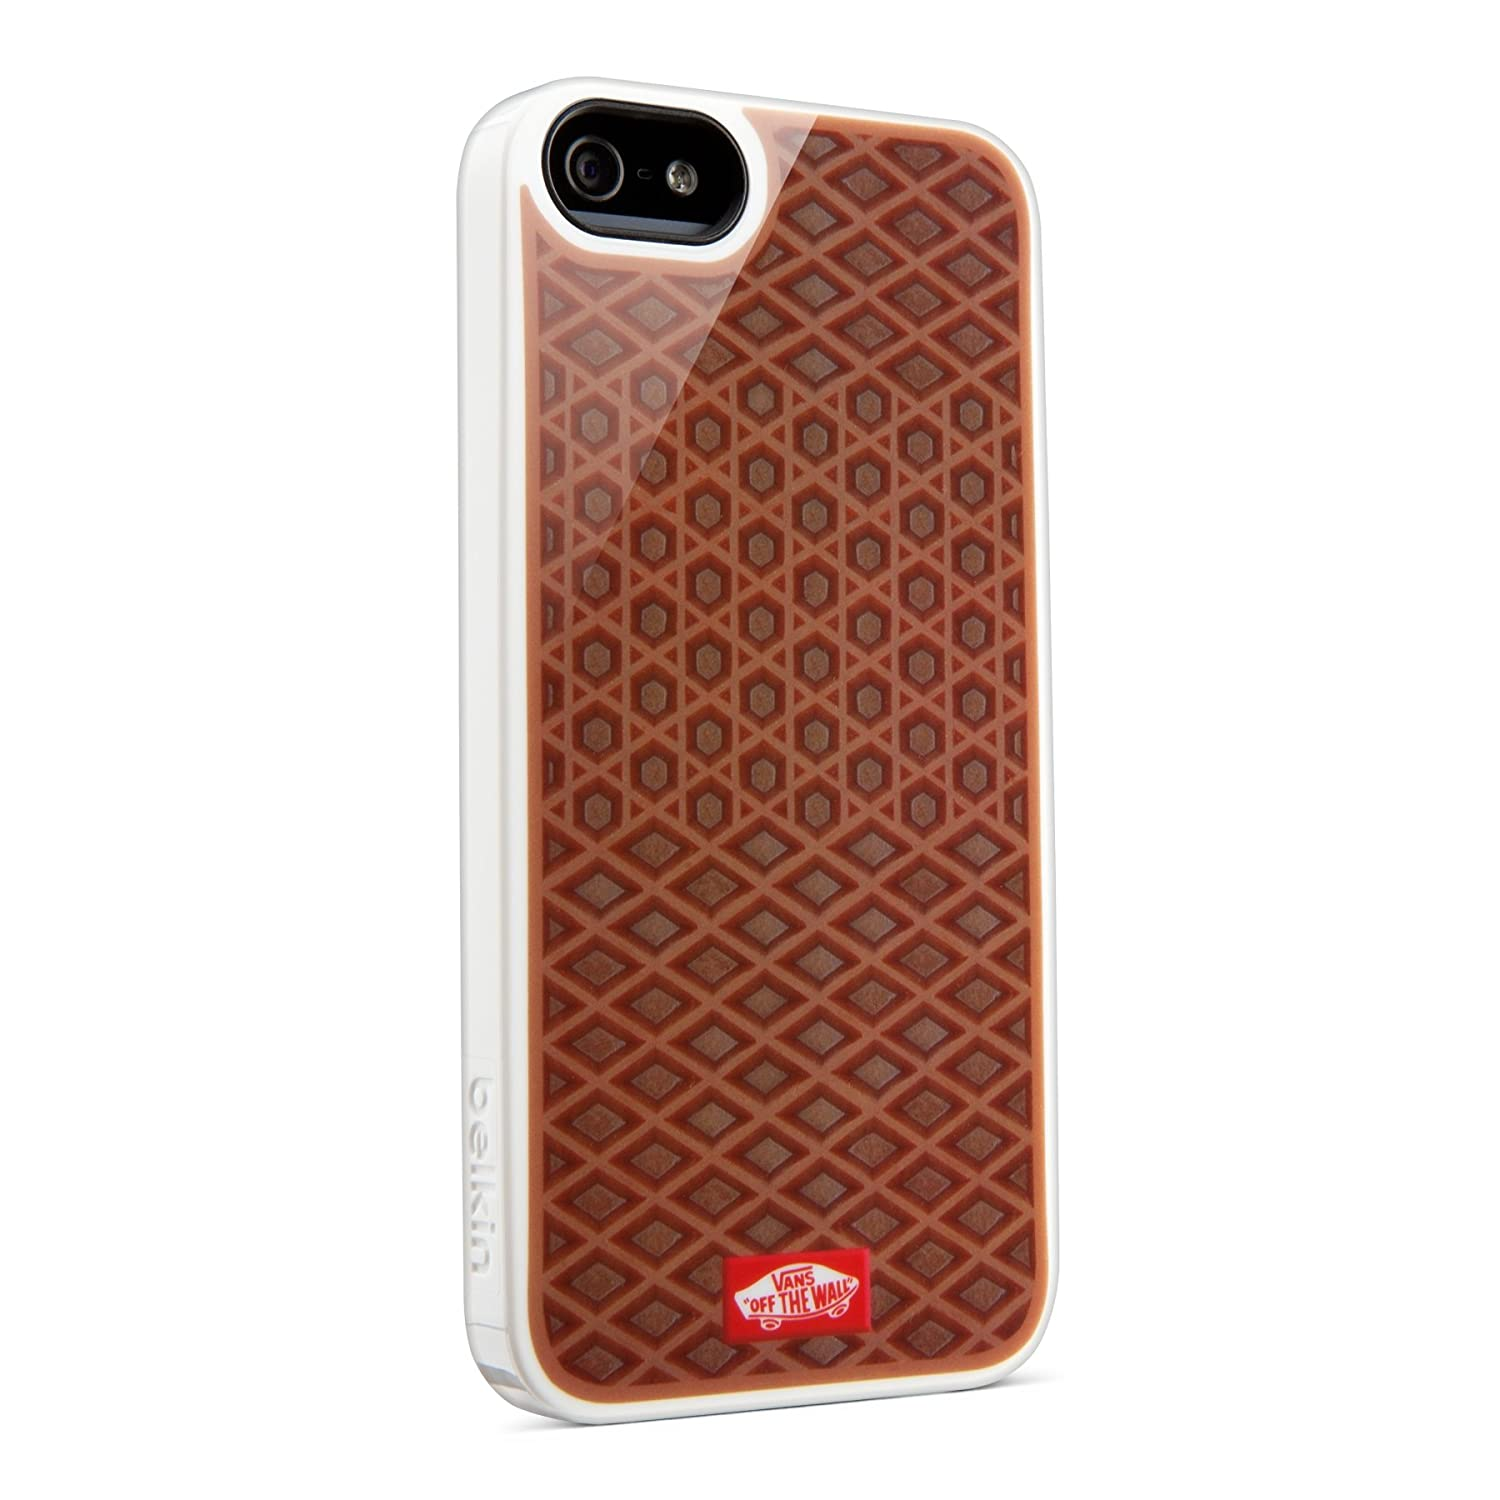 Belkin Vans - Funda para móvil iPhone 5, marrón: Amazon.es ...